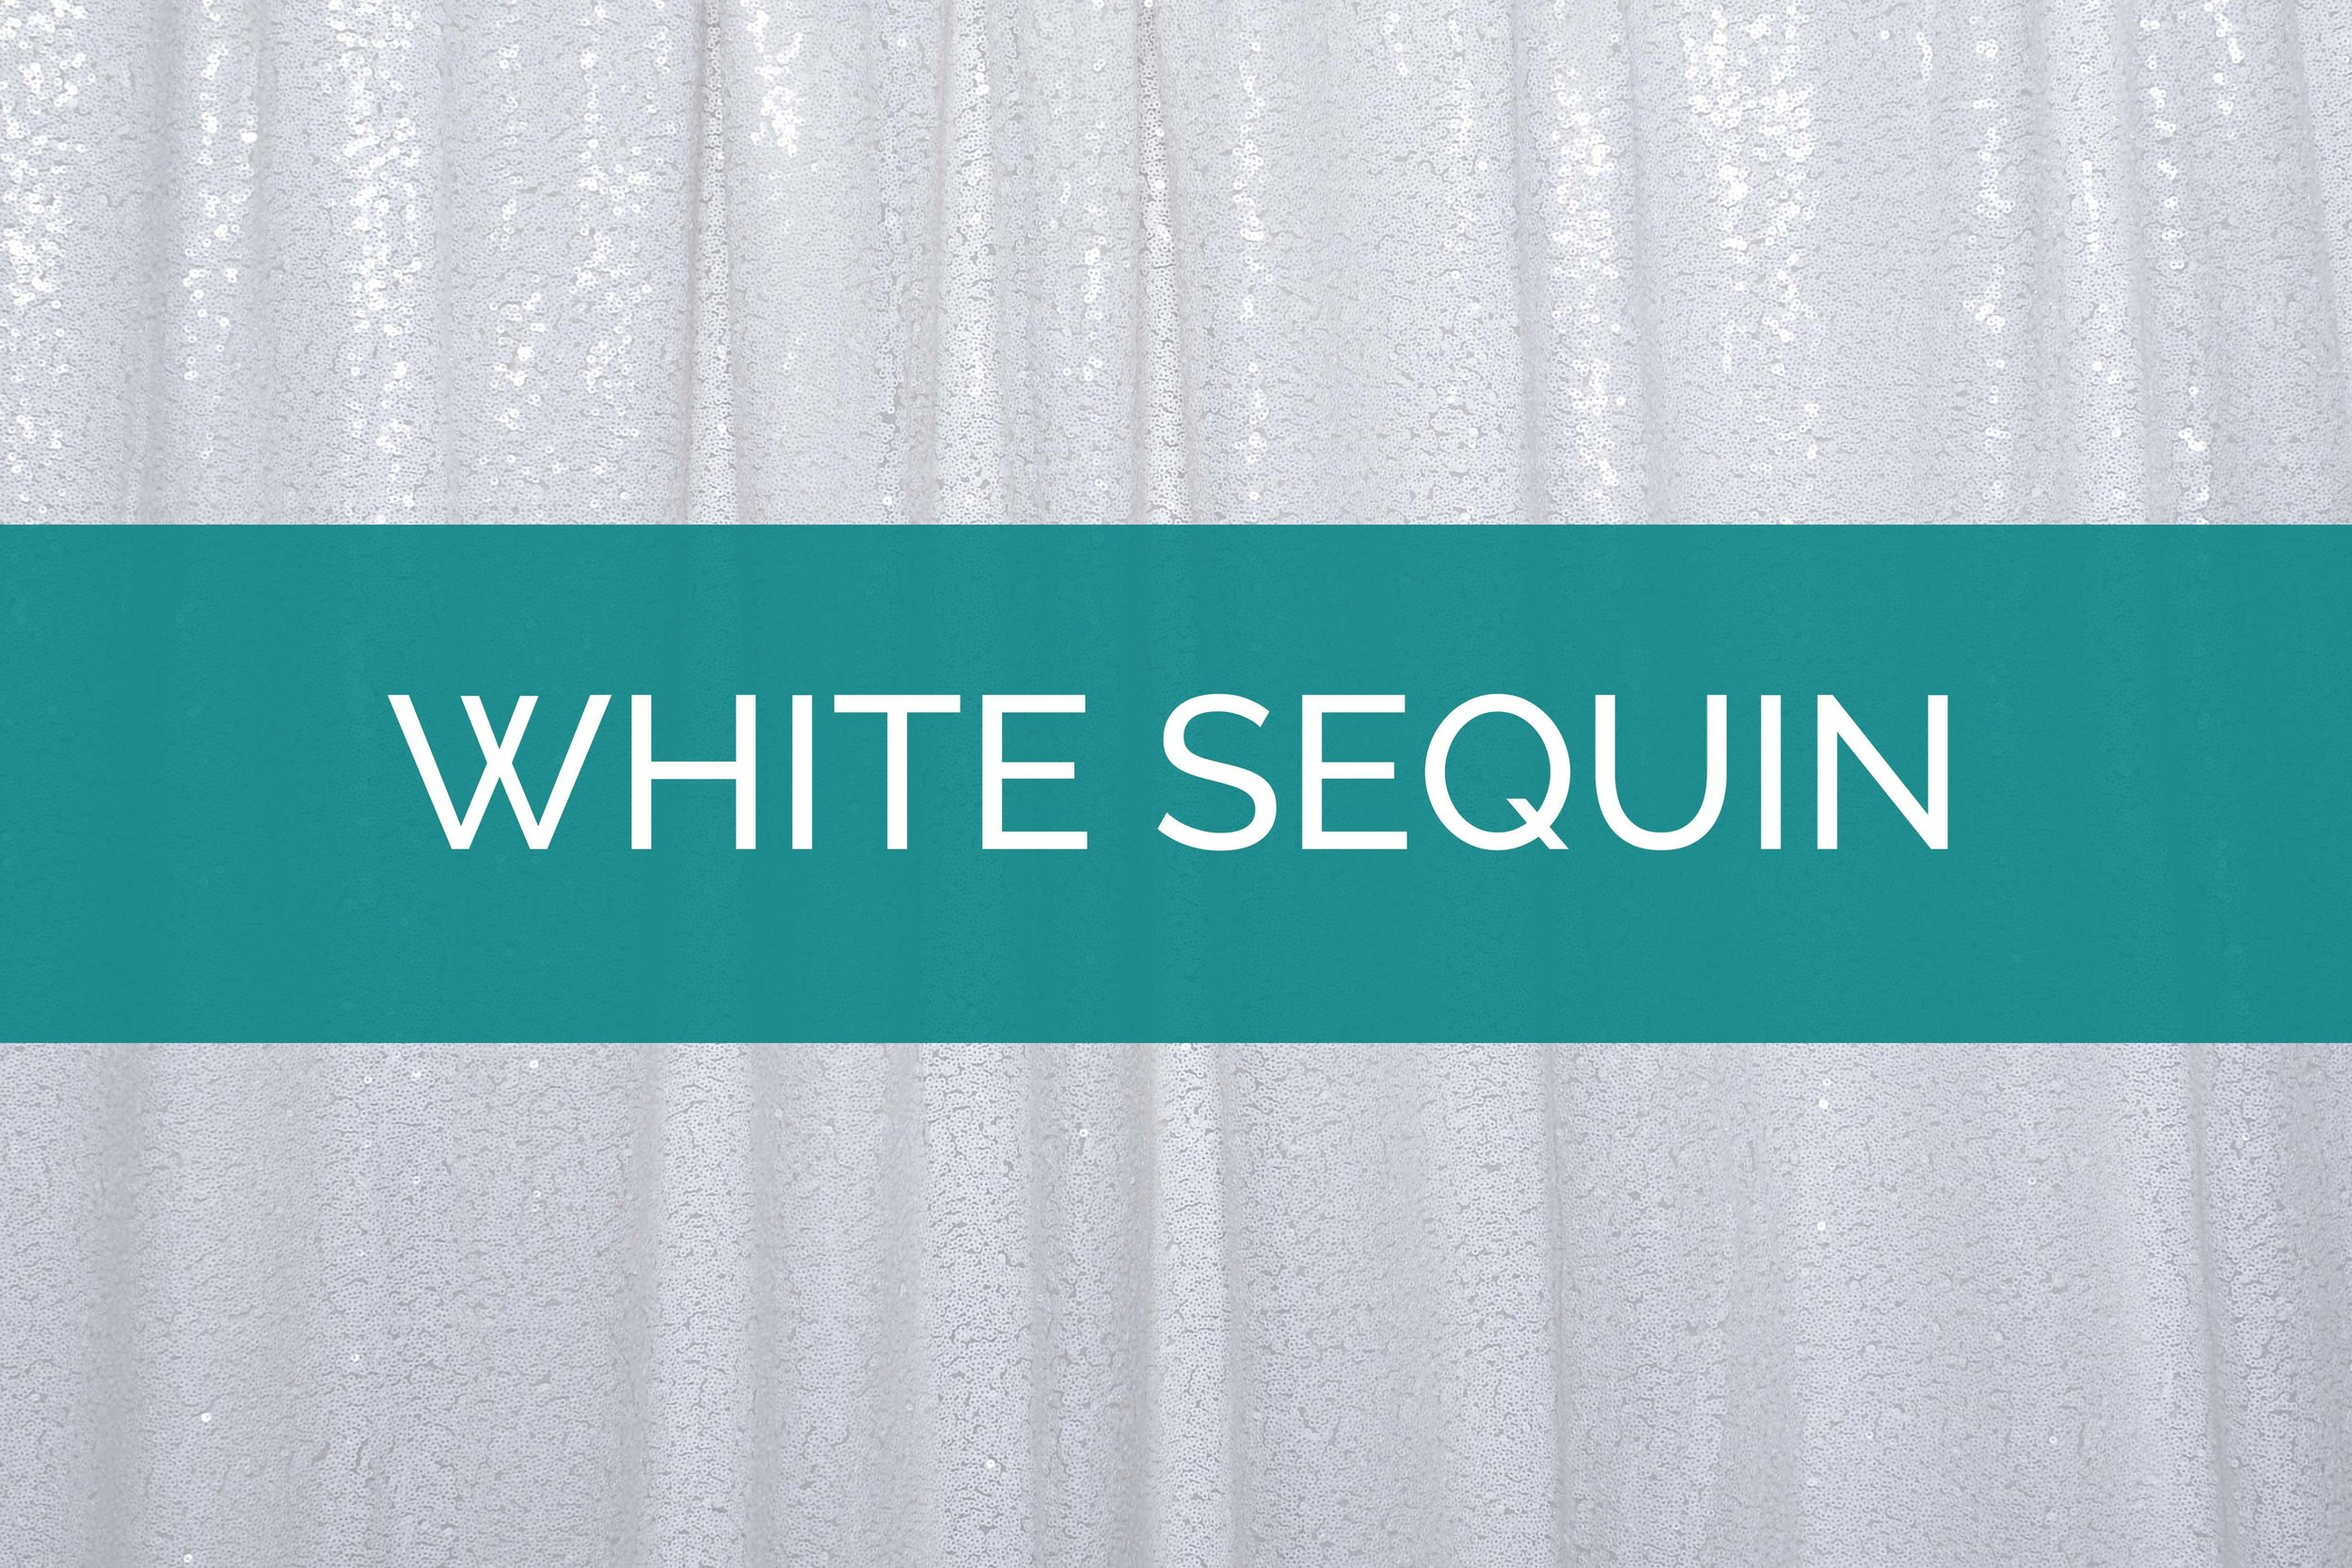 photo booth hire sydney backdrop white sequin 1.jpg